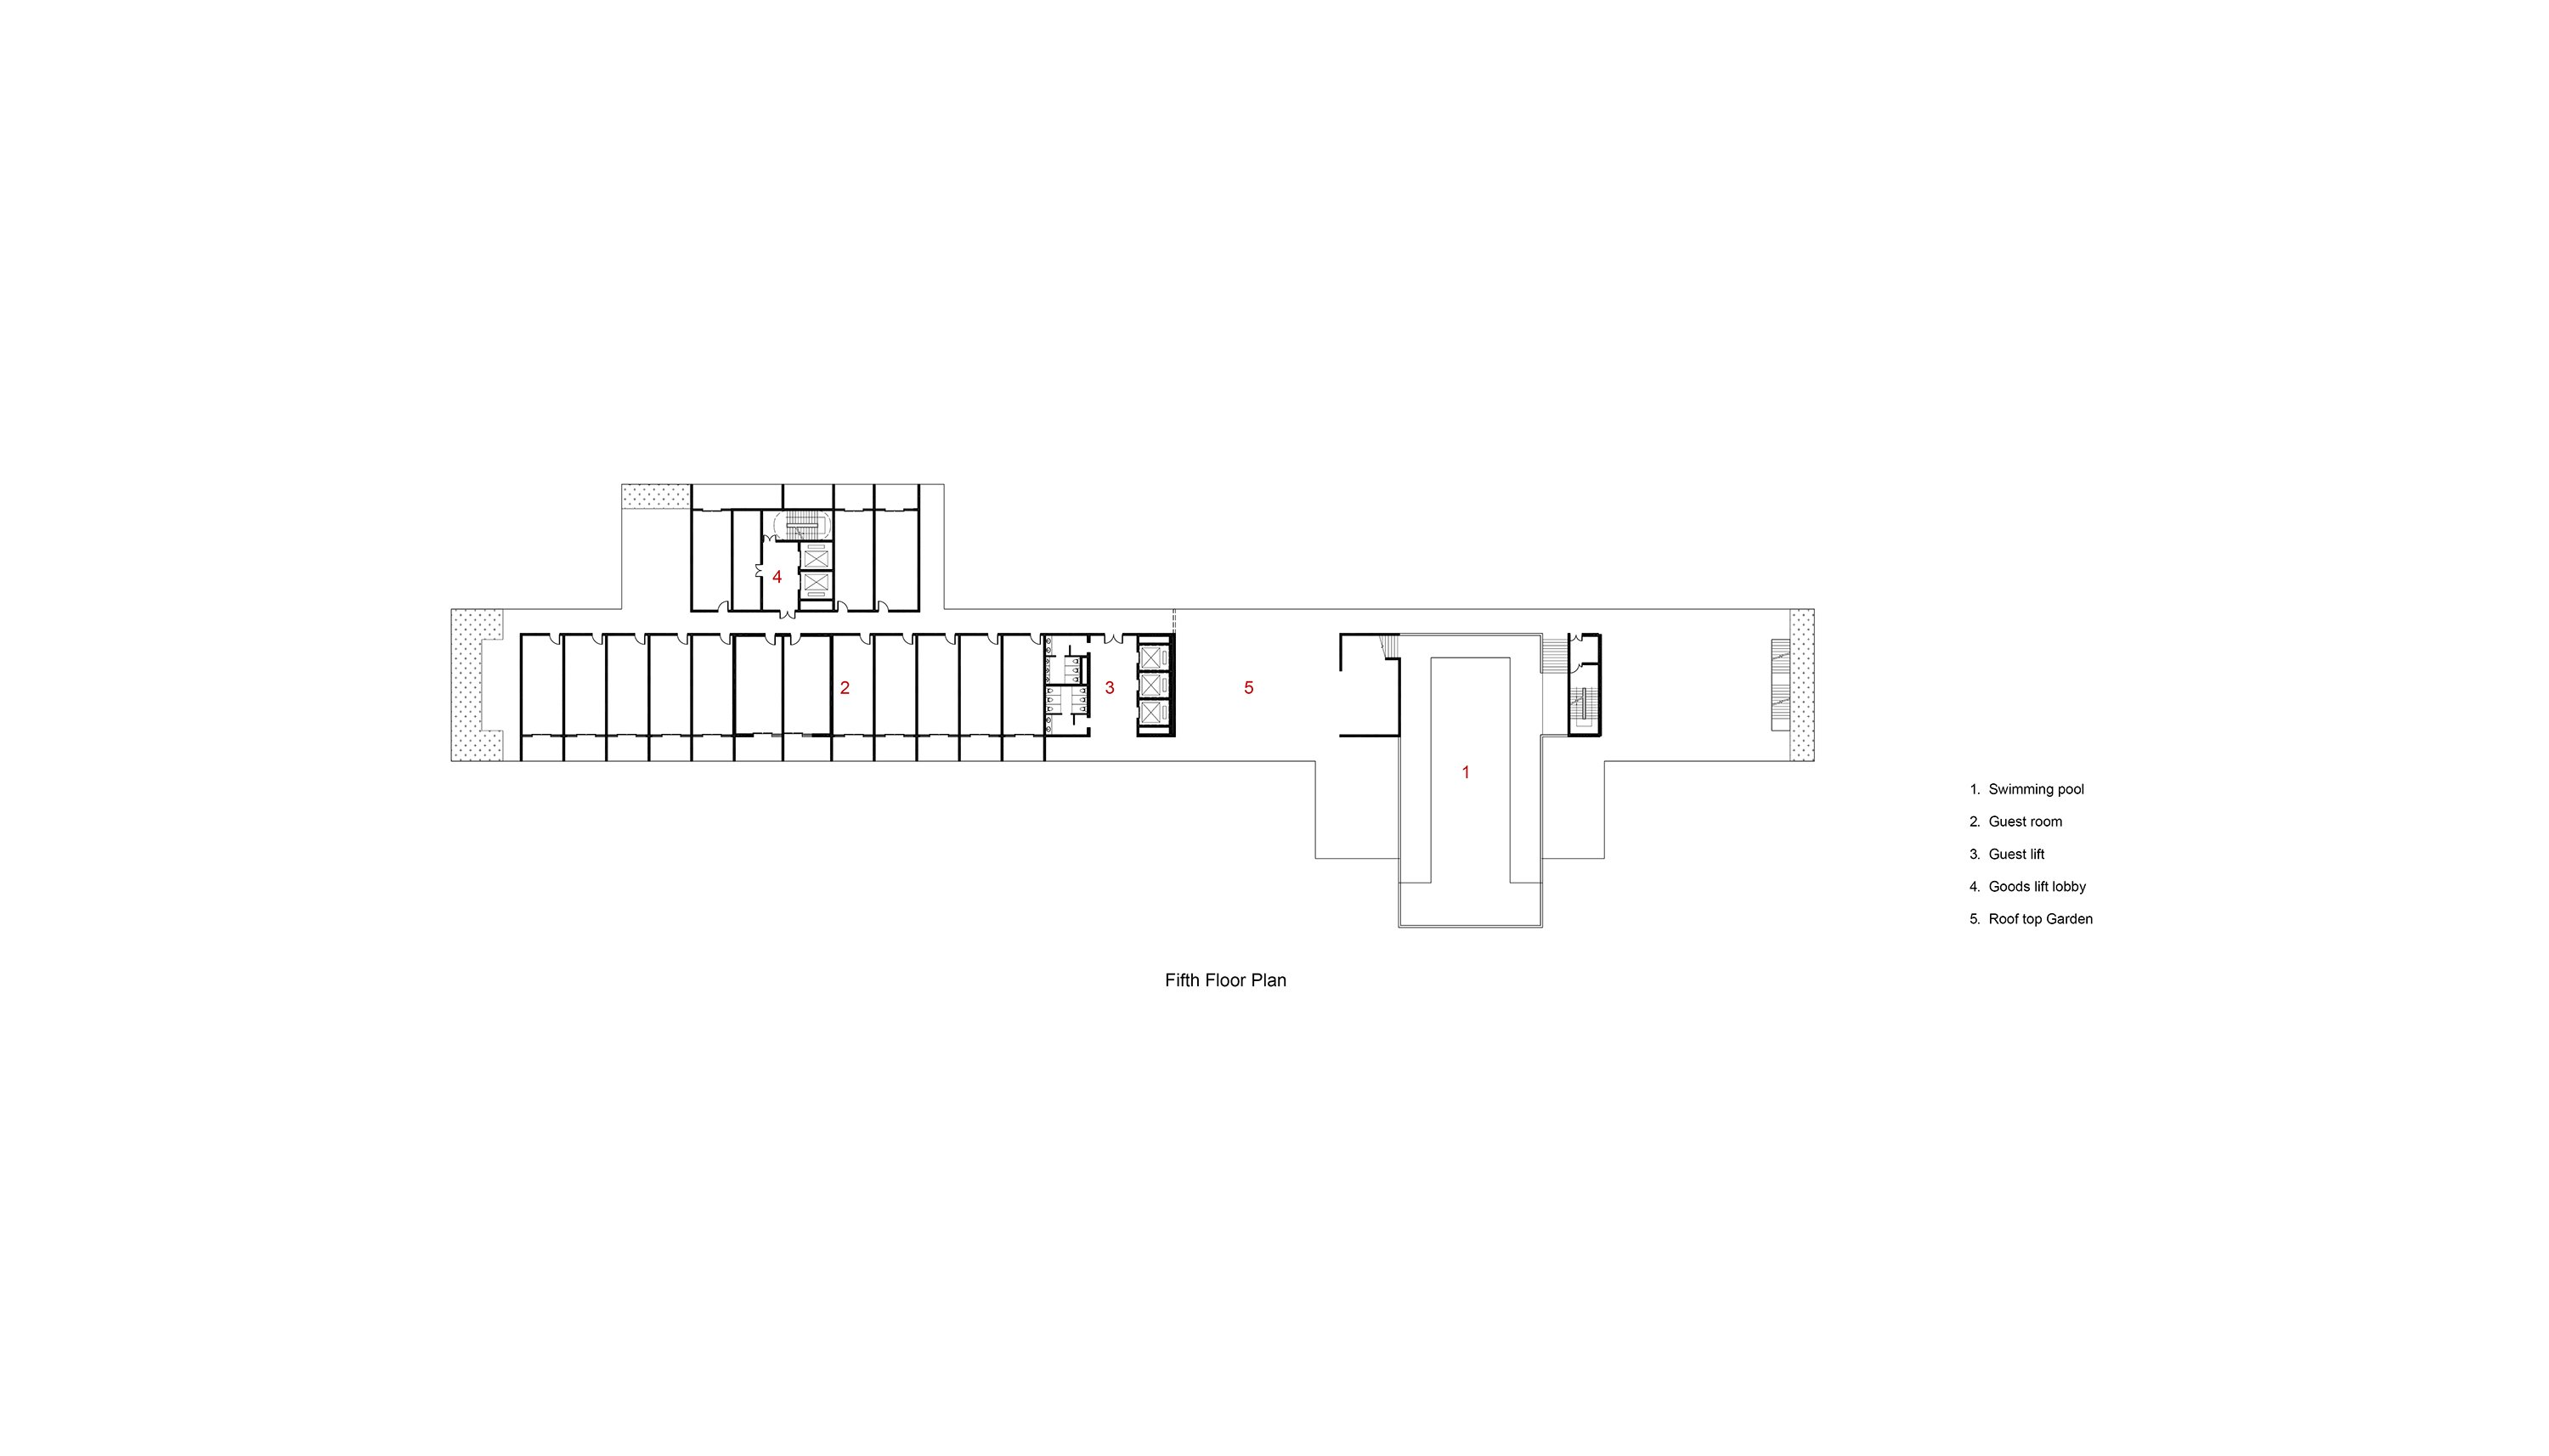 Fifth Floor Plan Studio A+}